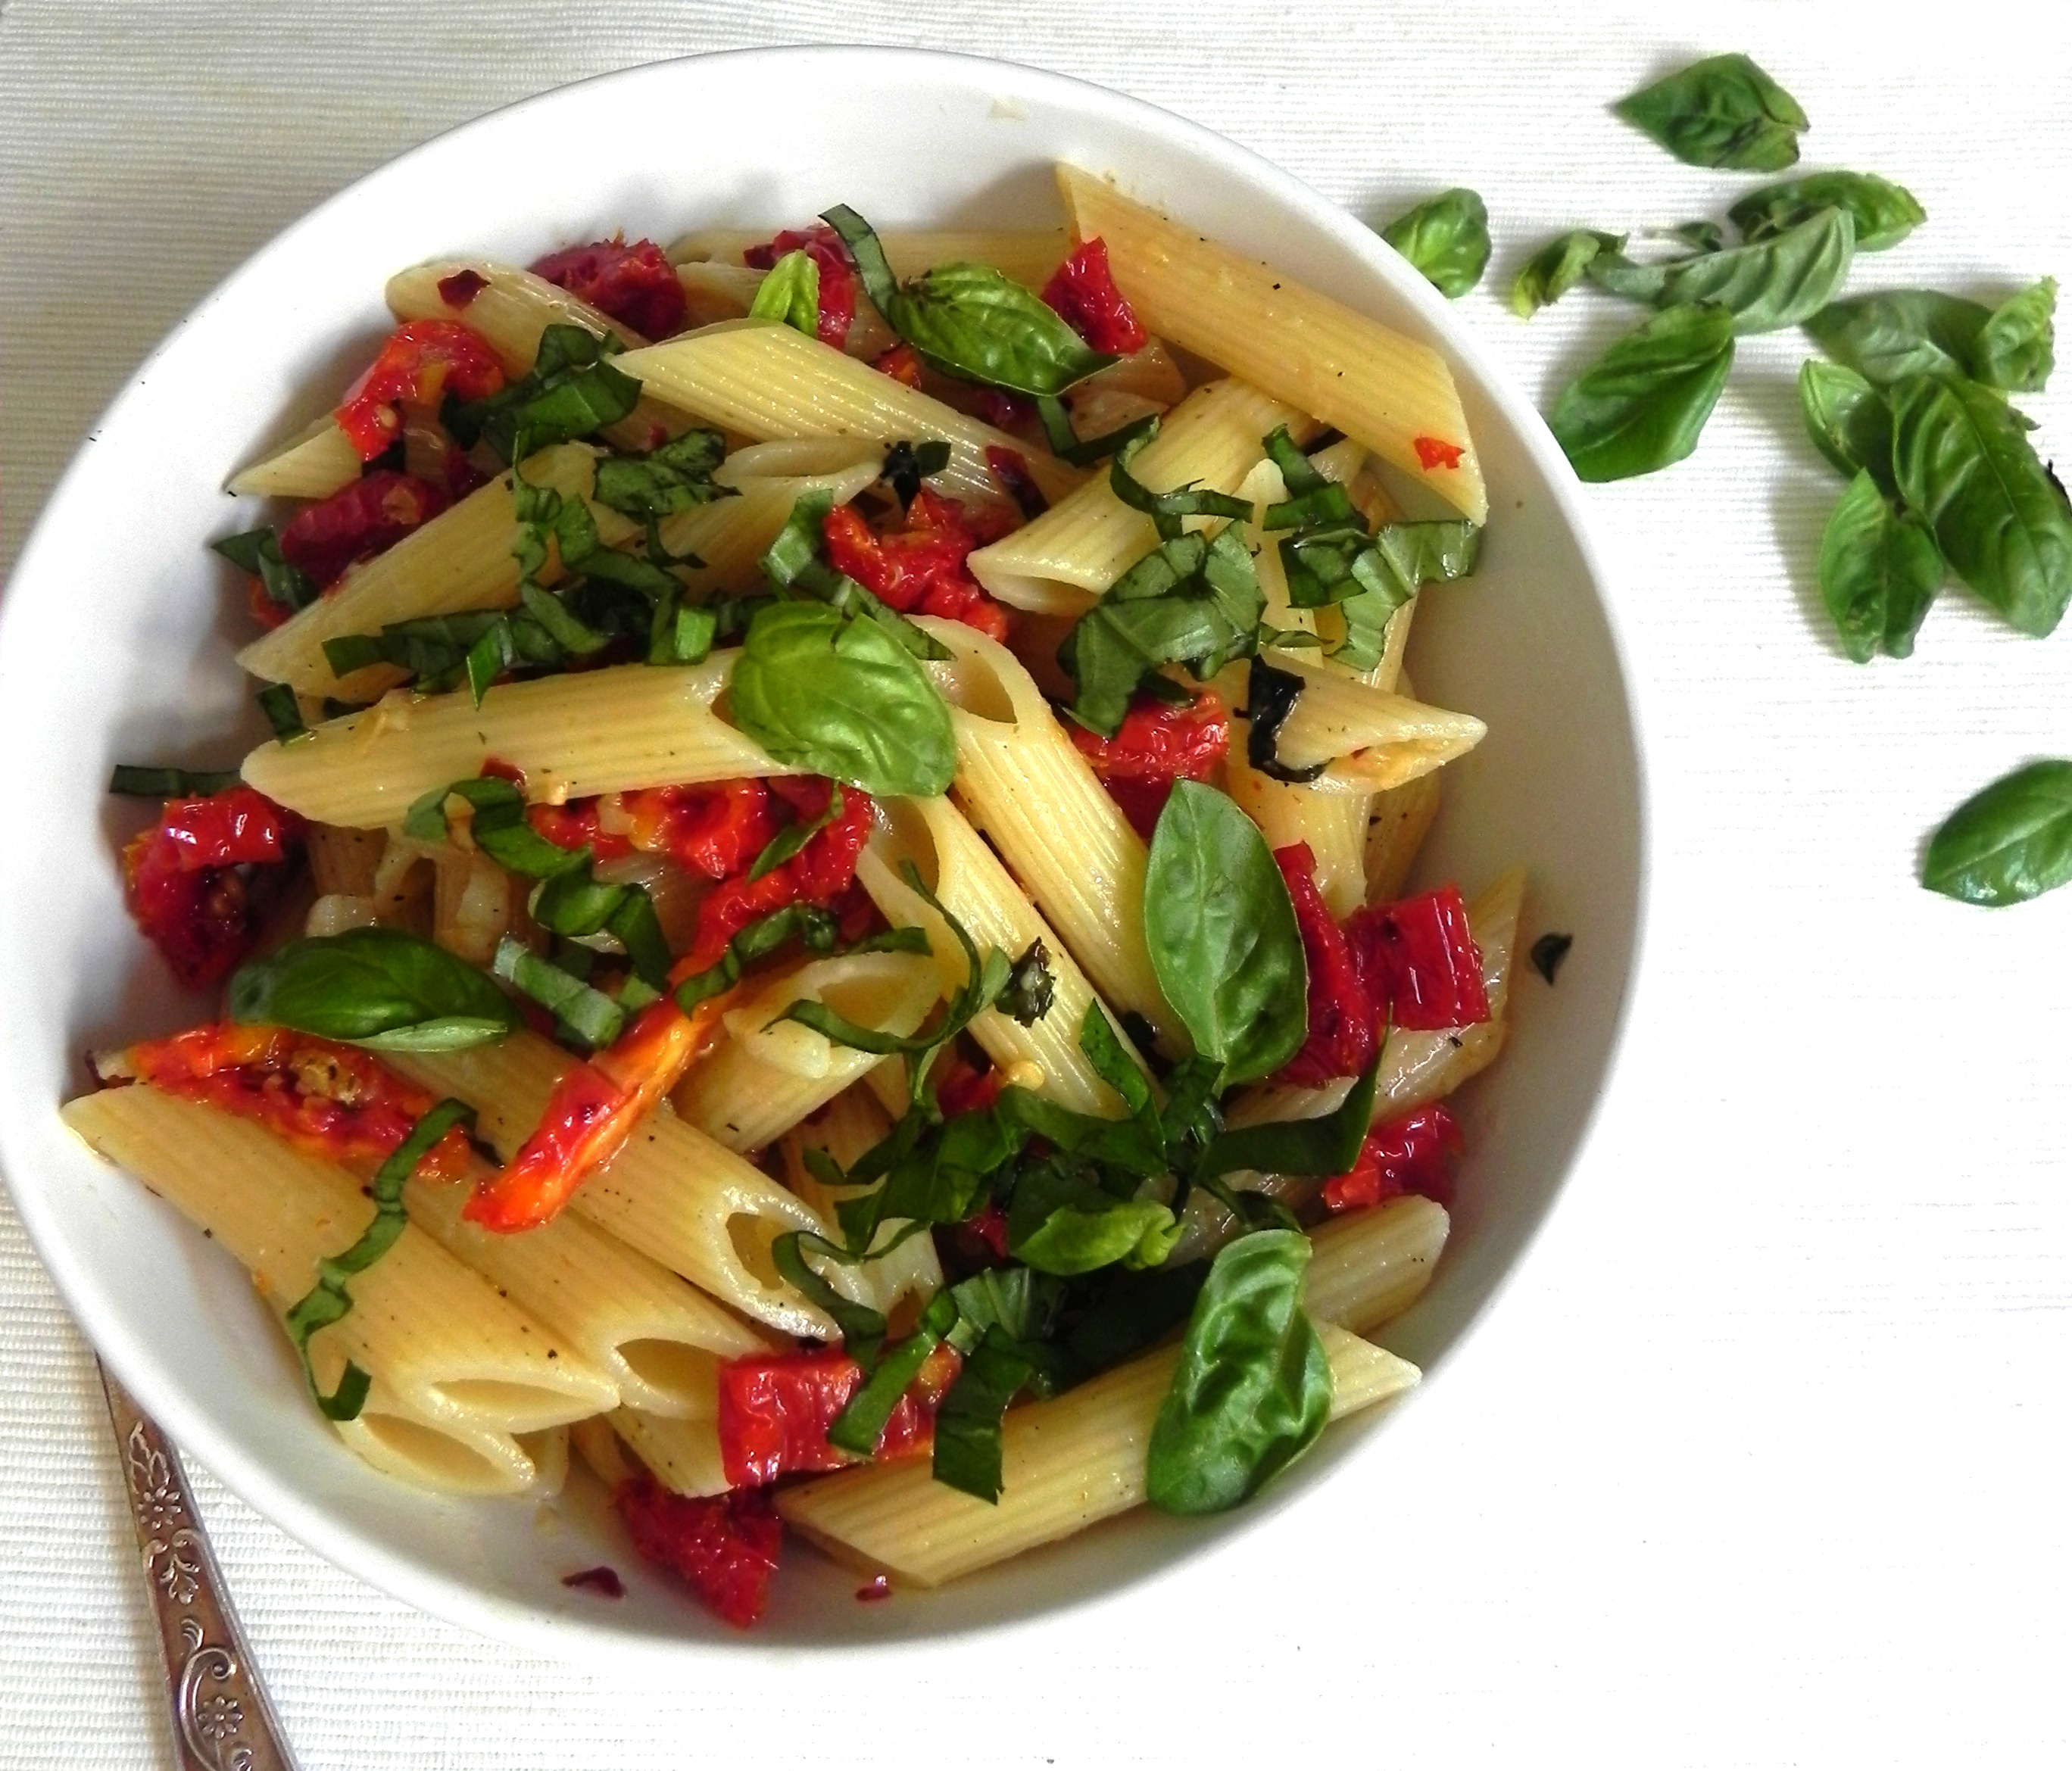 Sun-dried Tomato and Basil Pasta Salad | VORACIOUS VEGGIE